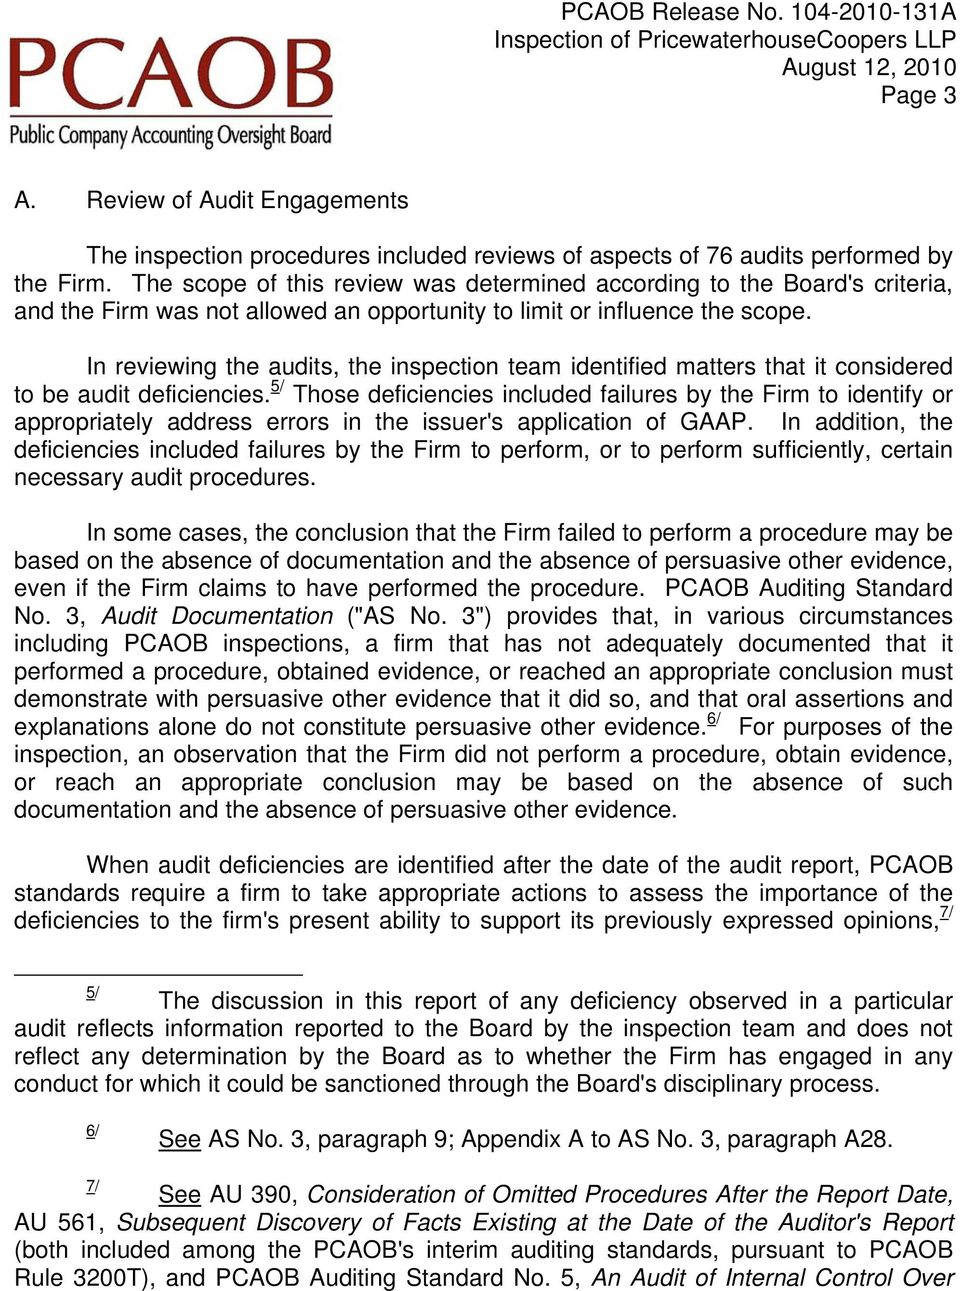 In reviewing the audits, the inspection team identified matters that it considered to be audit deficiencies.